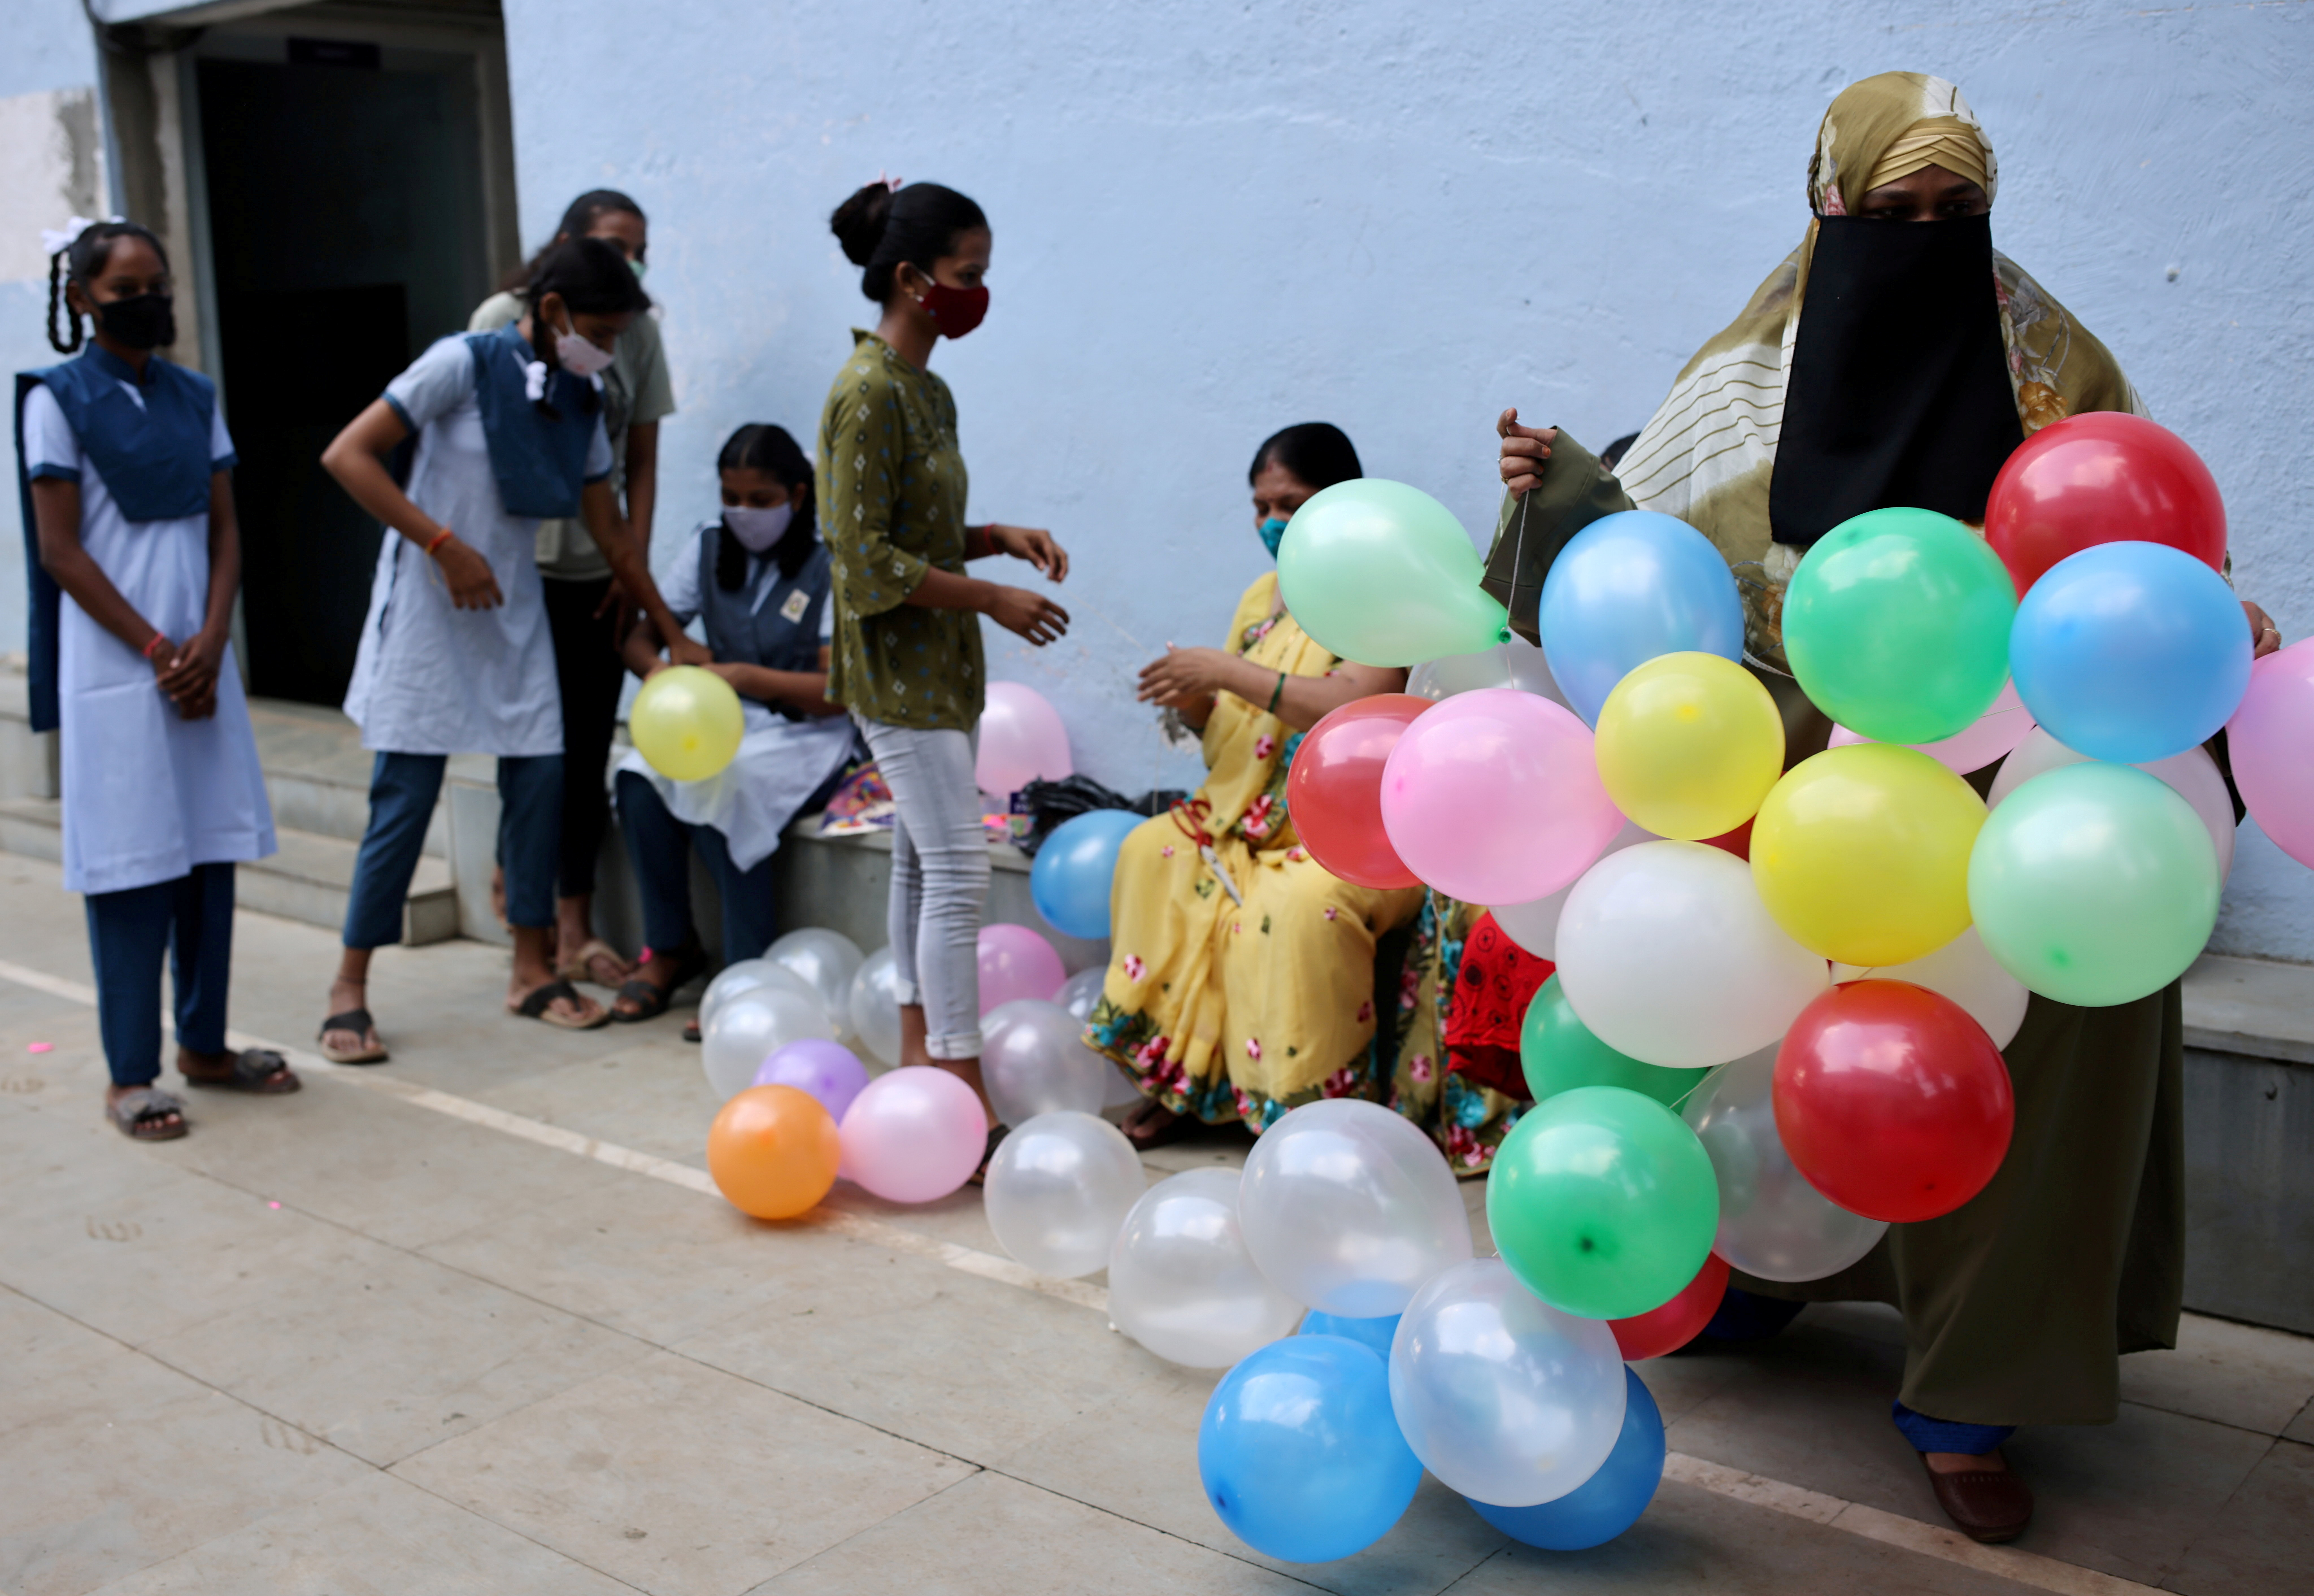 Students and teachers prepare to decorate a school following the reopening after over a year due to the coronavirus disease (COVID-19) pandemic in Mumbai, India, October 4, 2021. REUTERS/Francis Mascarenhas/File Photo